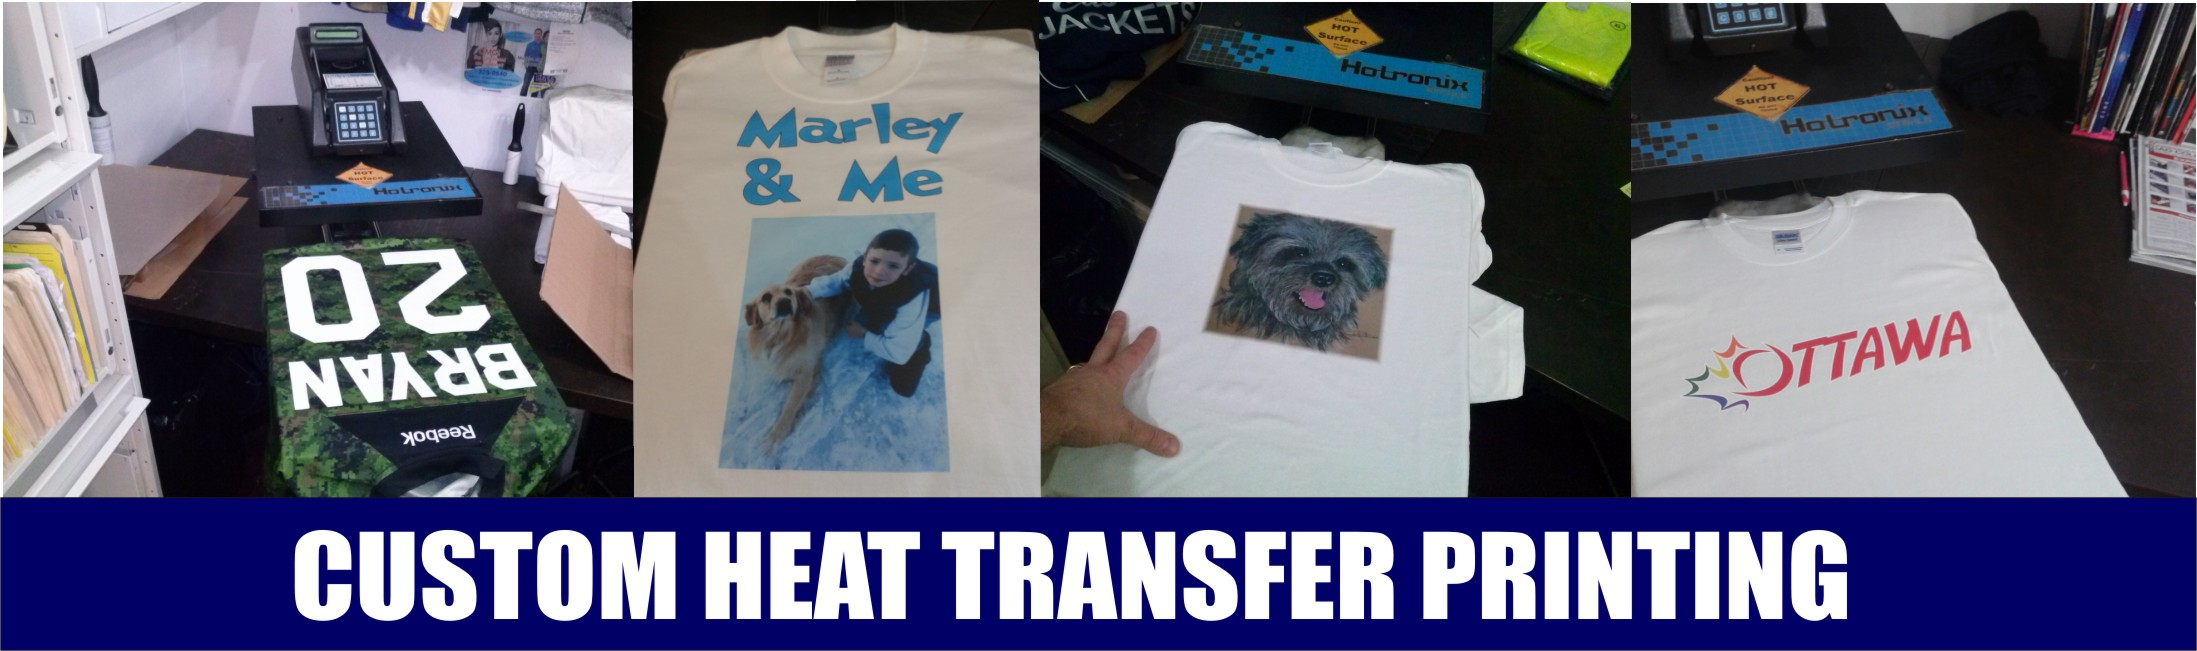 custom-heat-transfer-printing